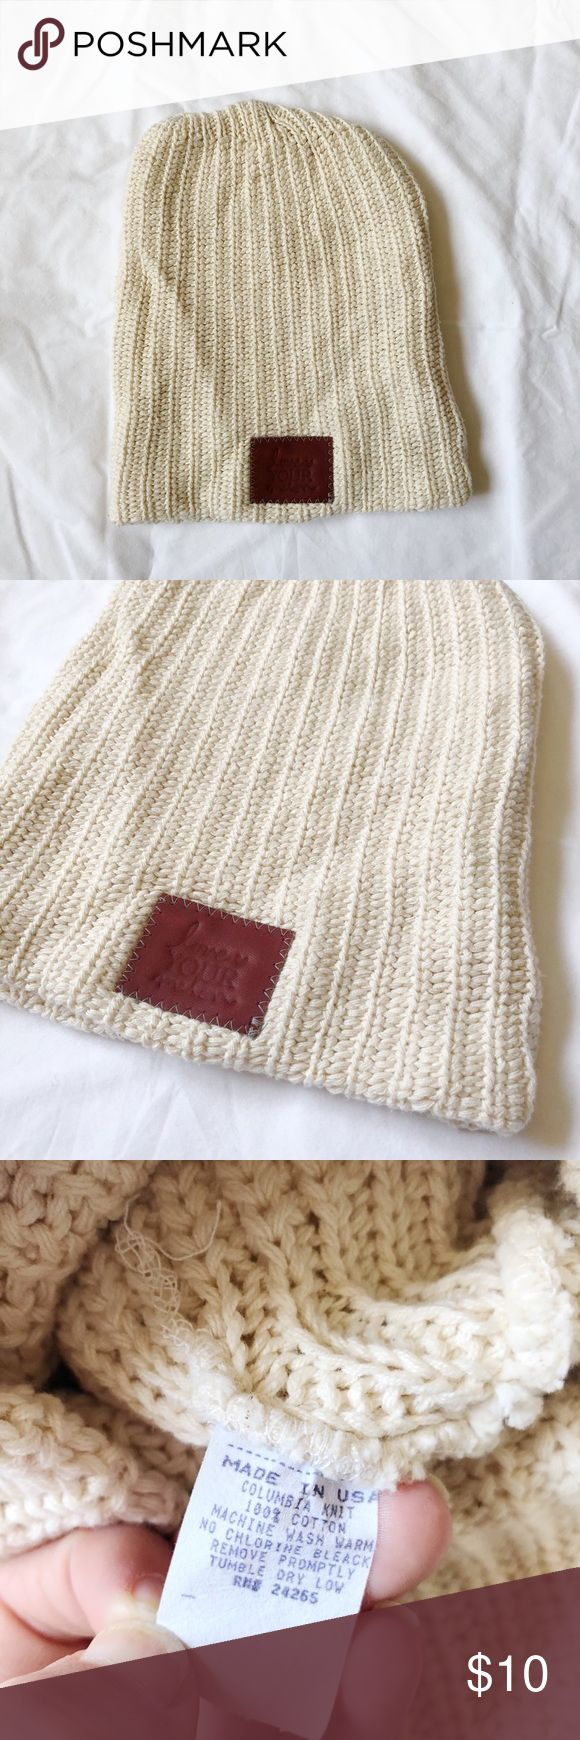 Love Your Melon Cream Beanie Love Your Melon Beanie In cream color. Just don't wear this color and in great condition! Love Your Melon Accessories Hats